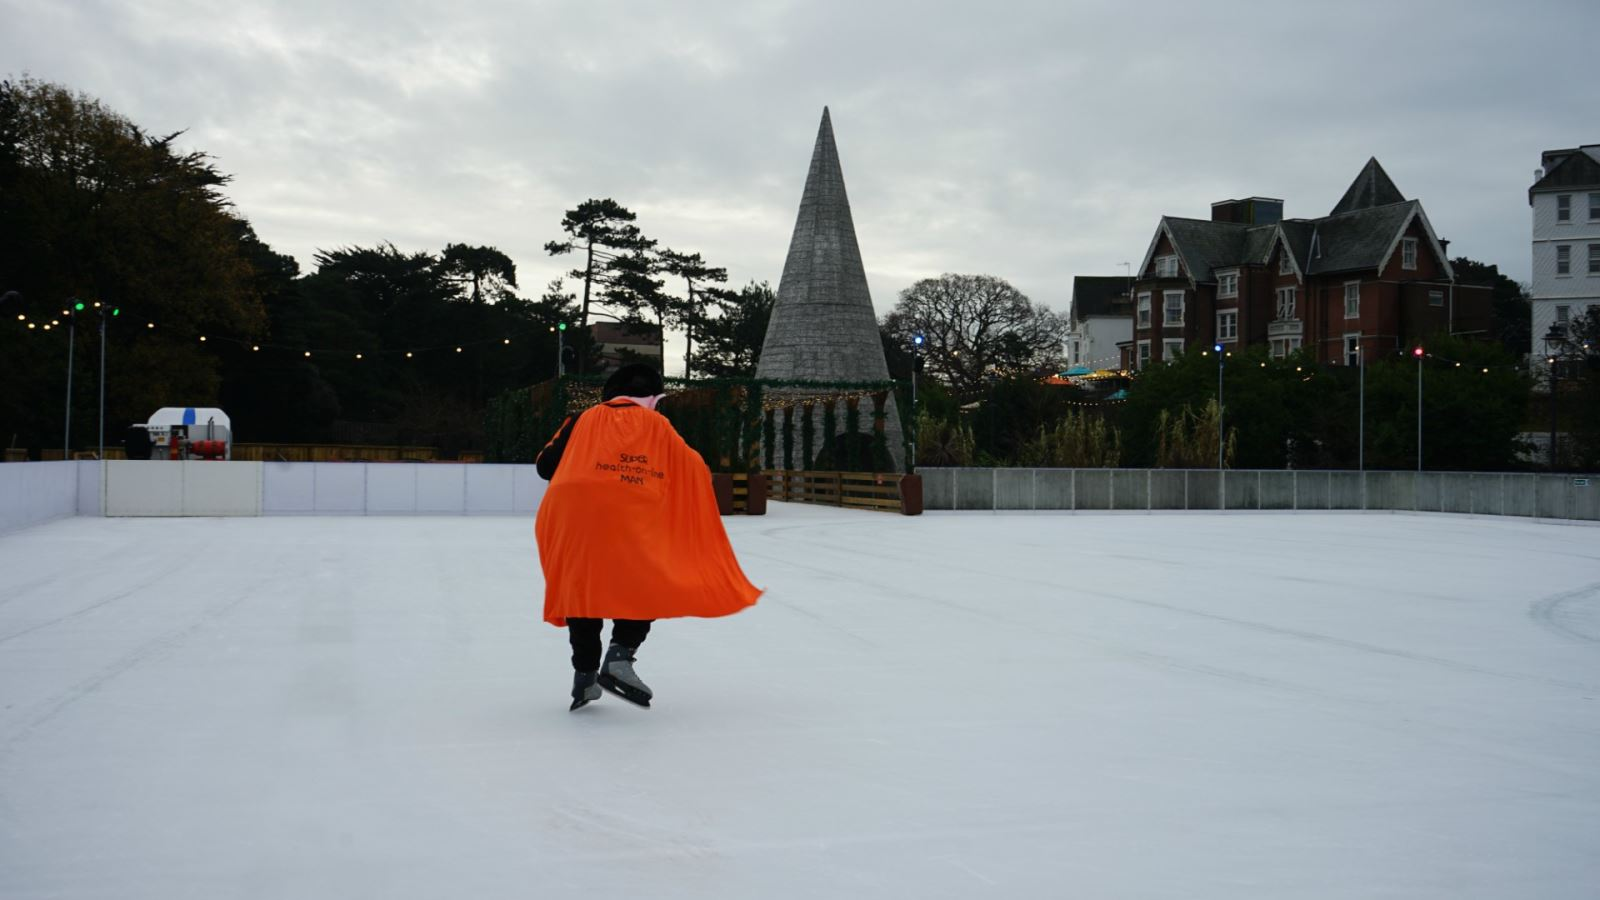 Mr Health on Line in Bournemouth, ice-skating away as his orange cape is blown by the wind